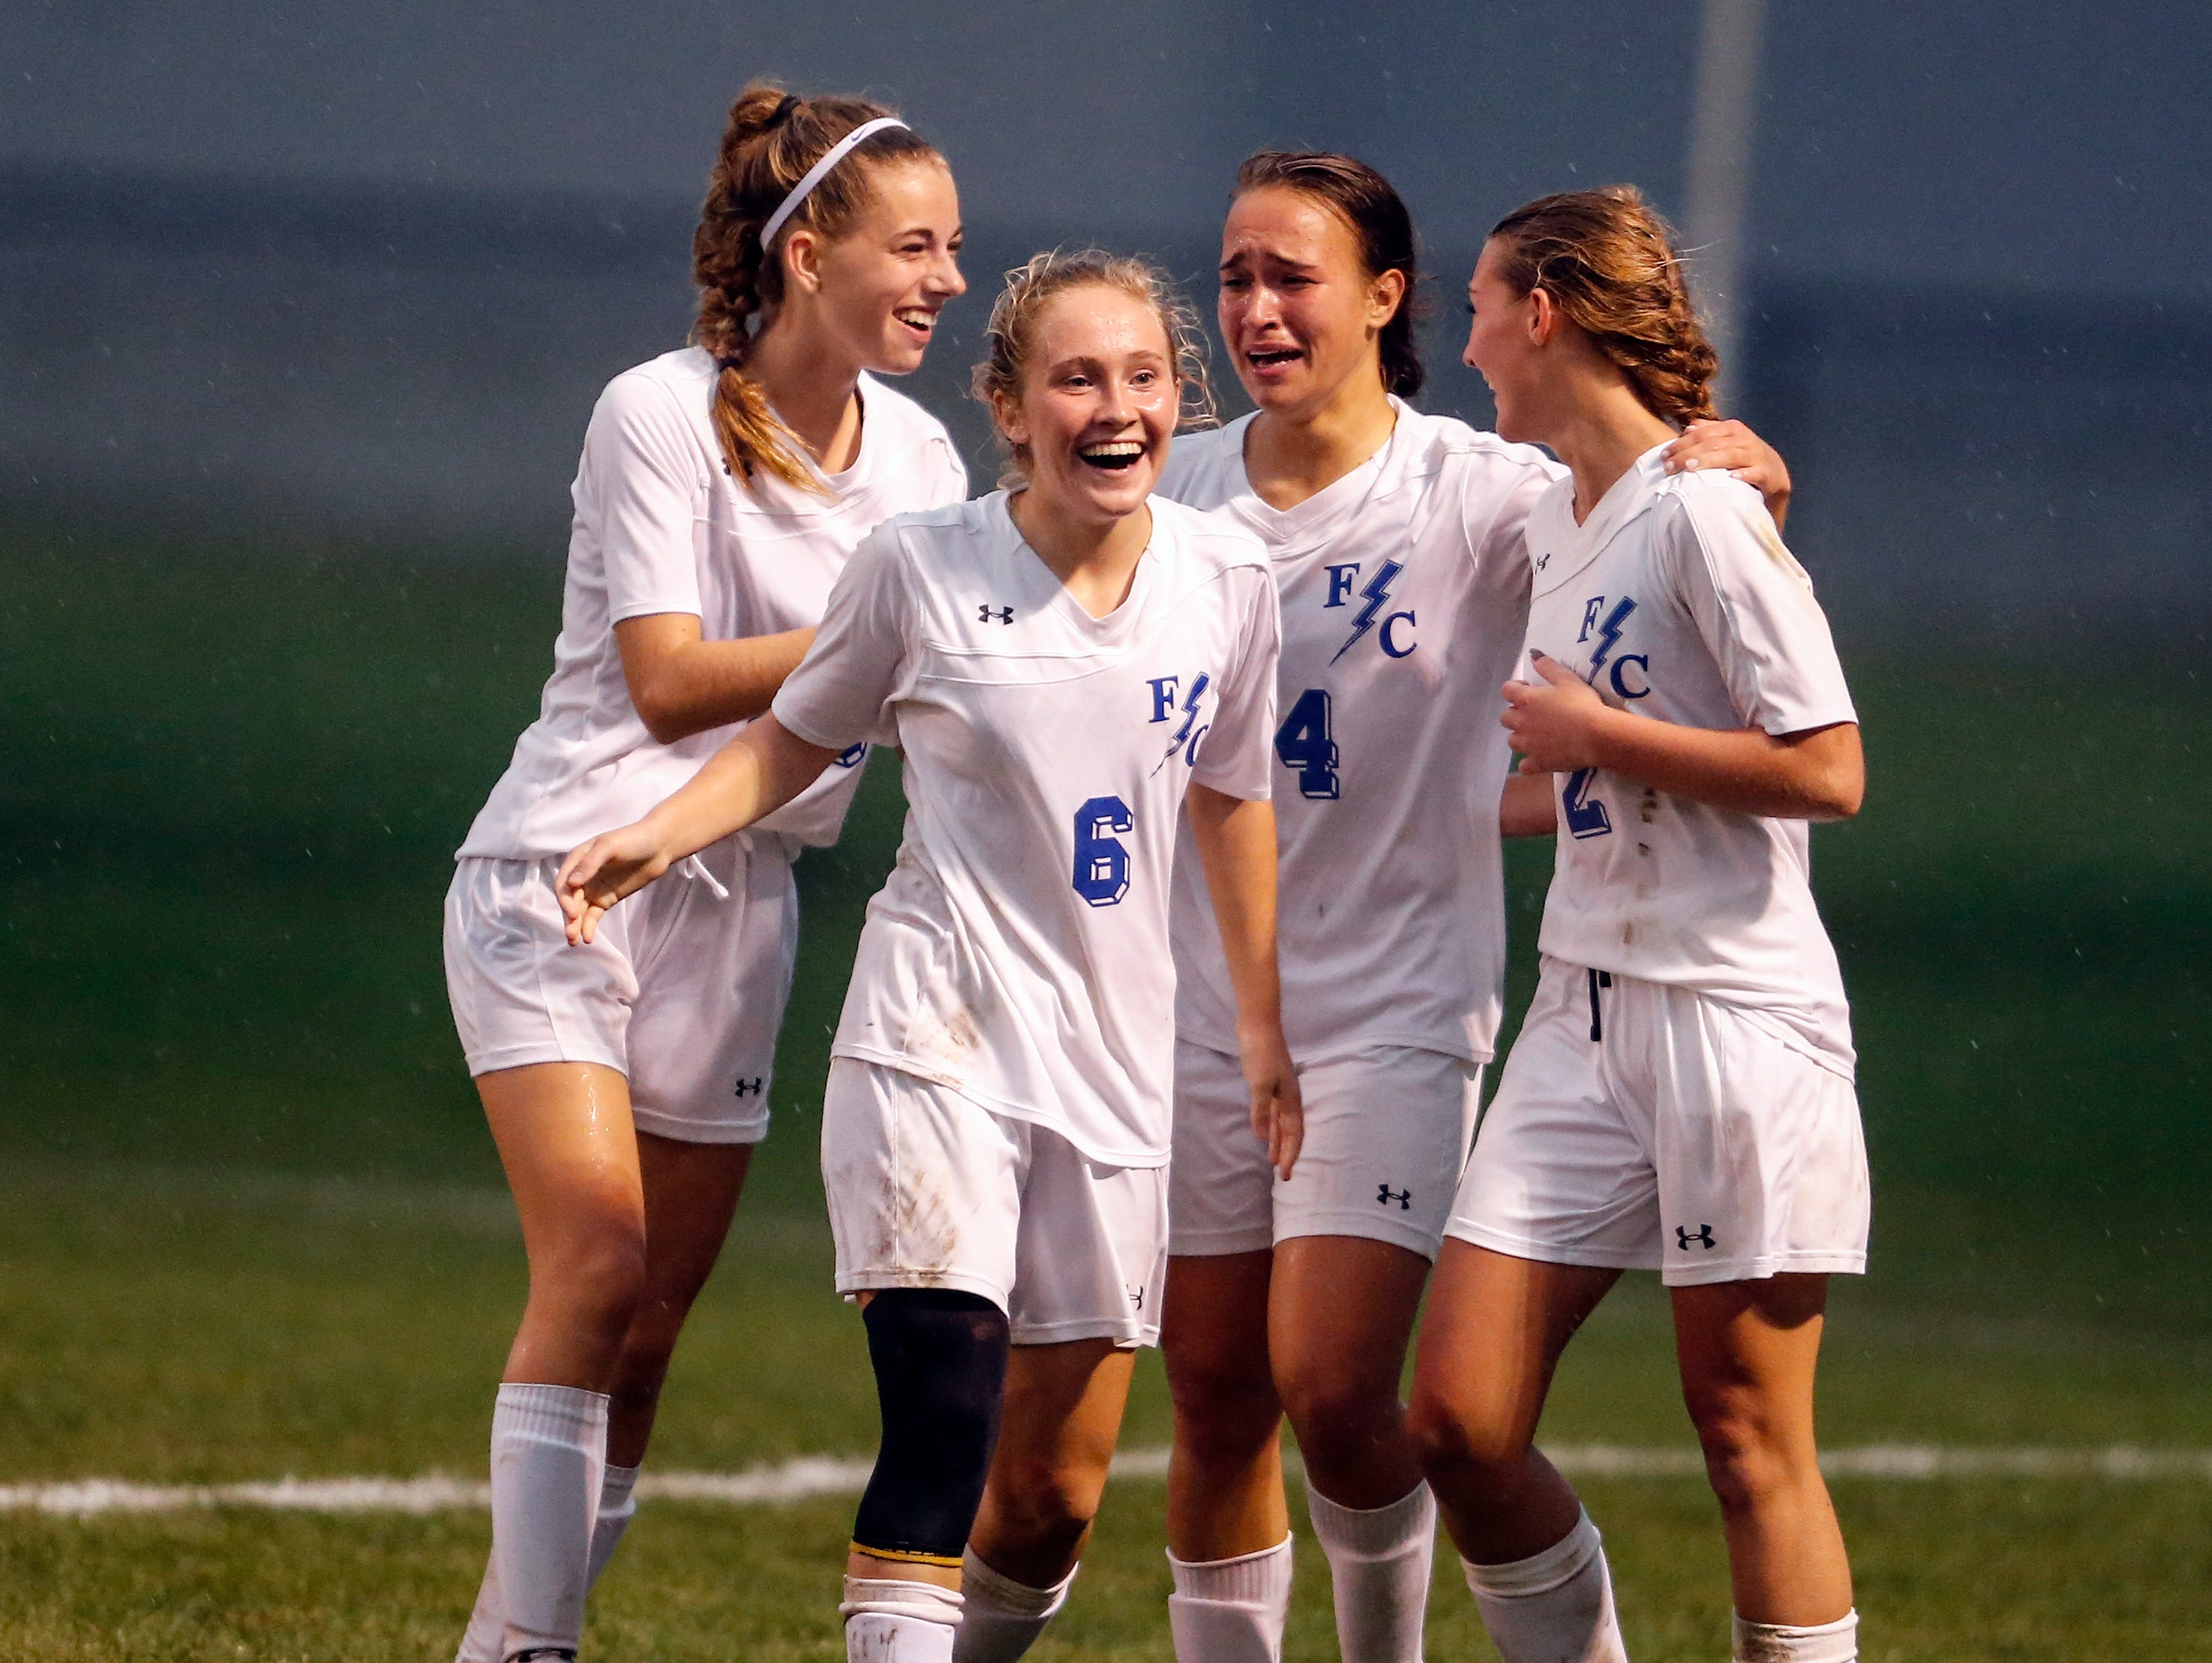 Franklin Central Savannah Kellum (second from right) is congratulated by teammates after scoring the winning goal in overtime in their semi-final game against Center Grove in the Shelbyville Regional on October 12,2016.